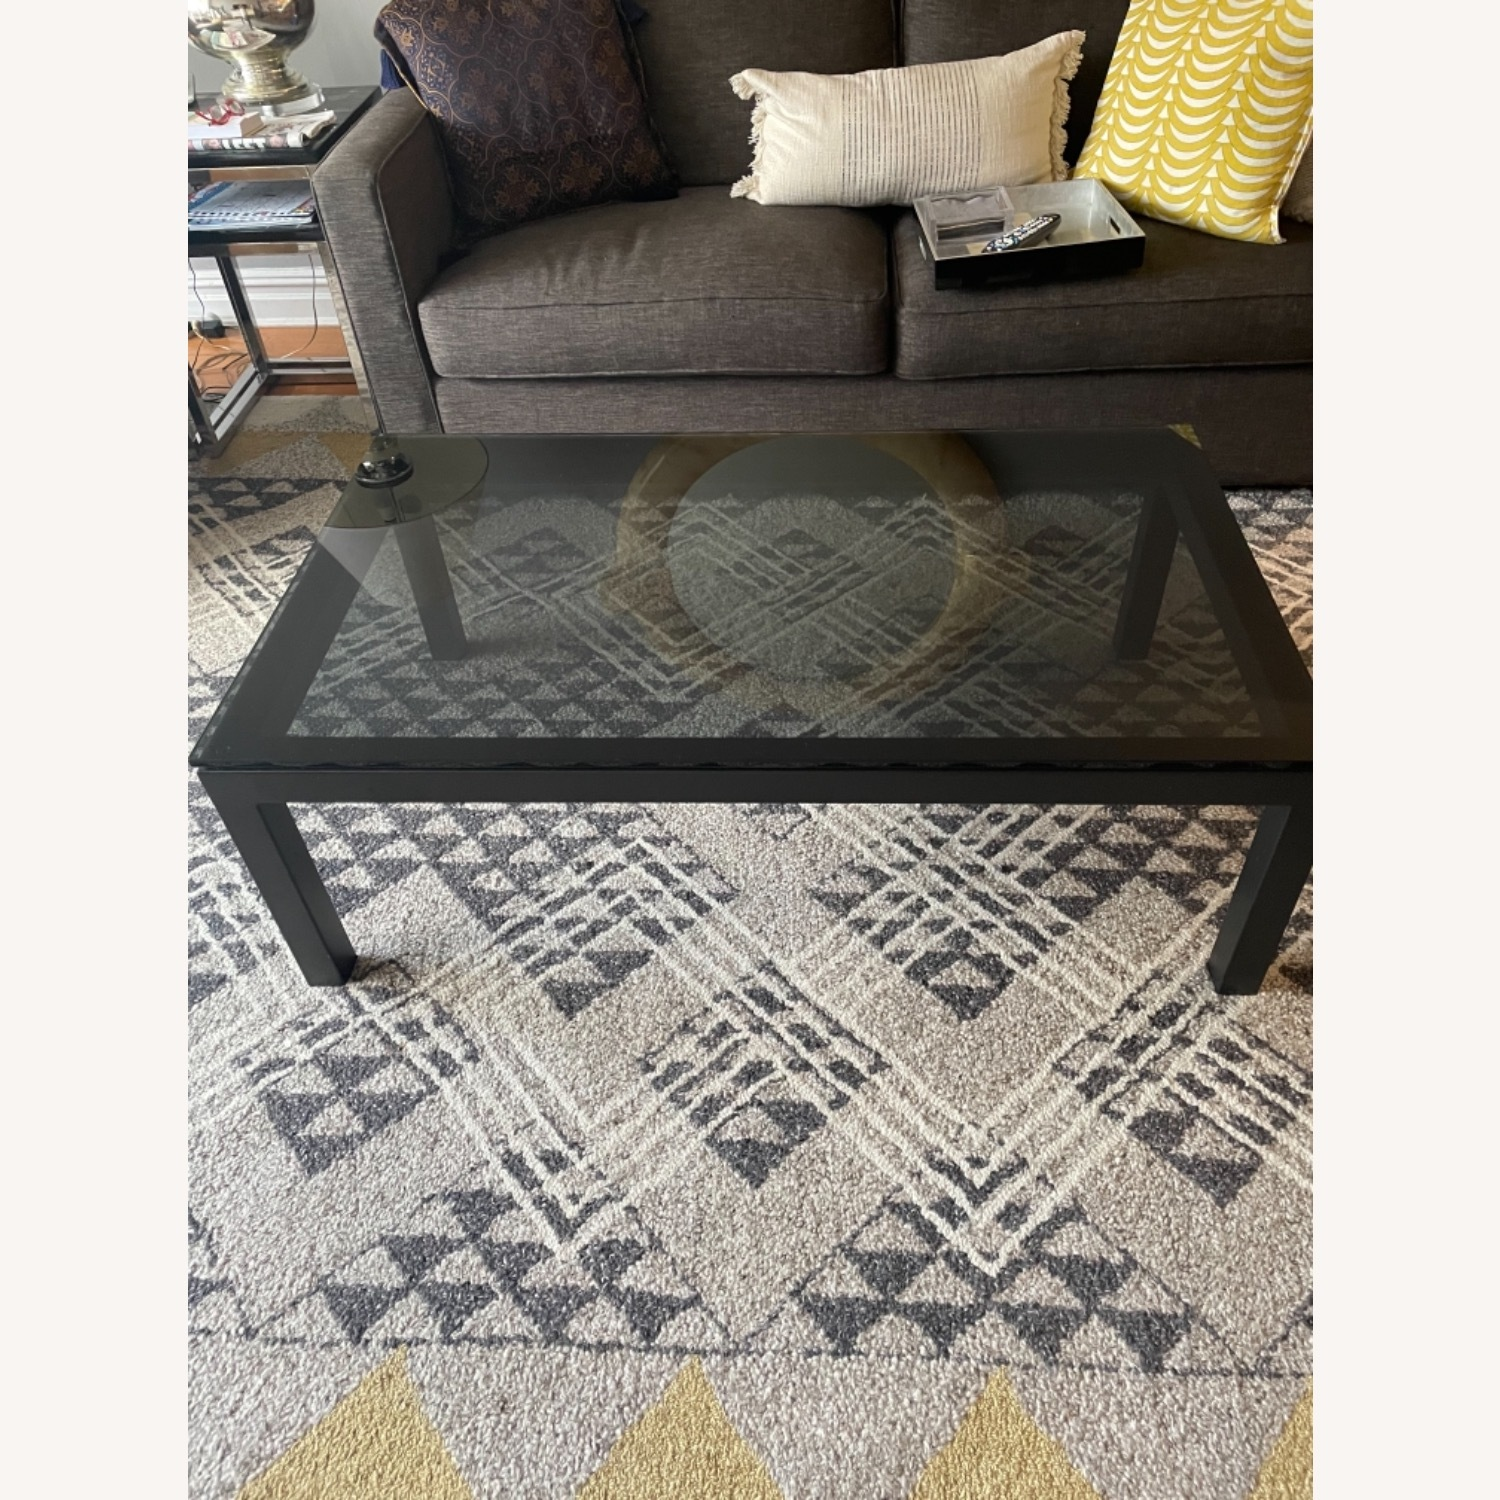 Crate and Barrel Smoked Glass Black Coffee Table - image-3